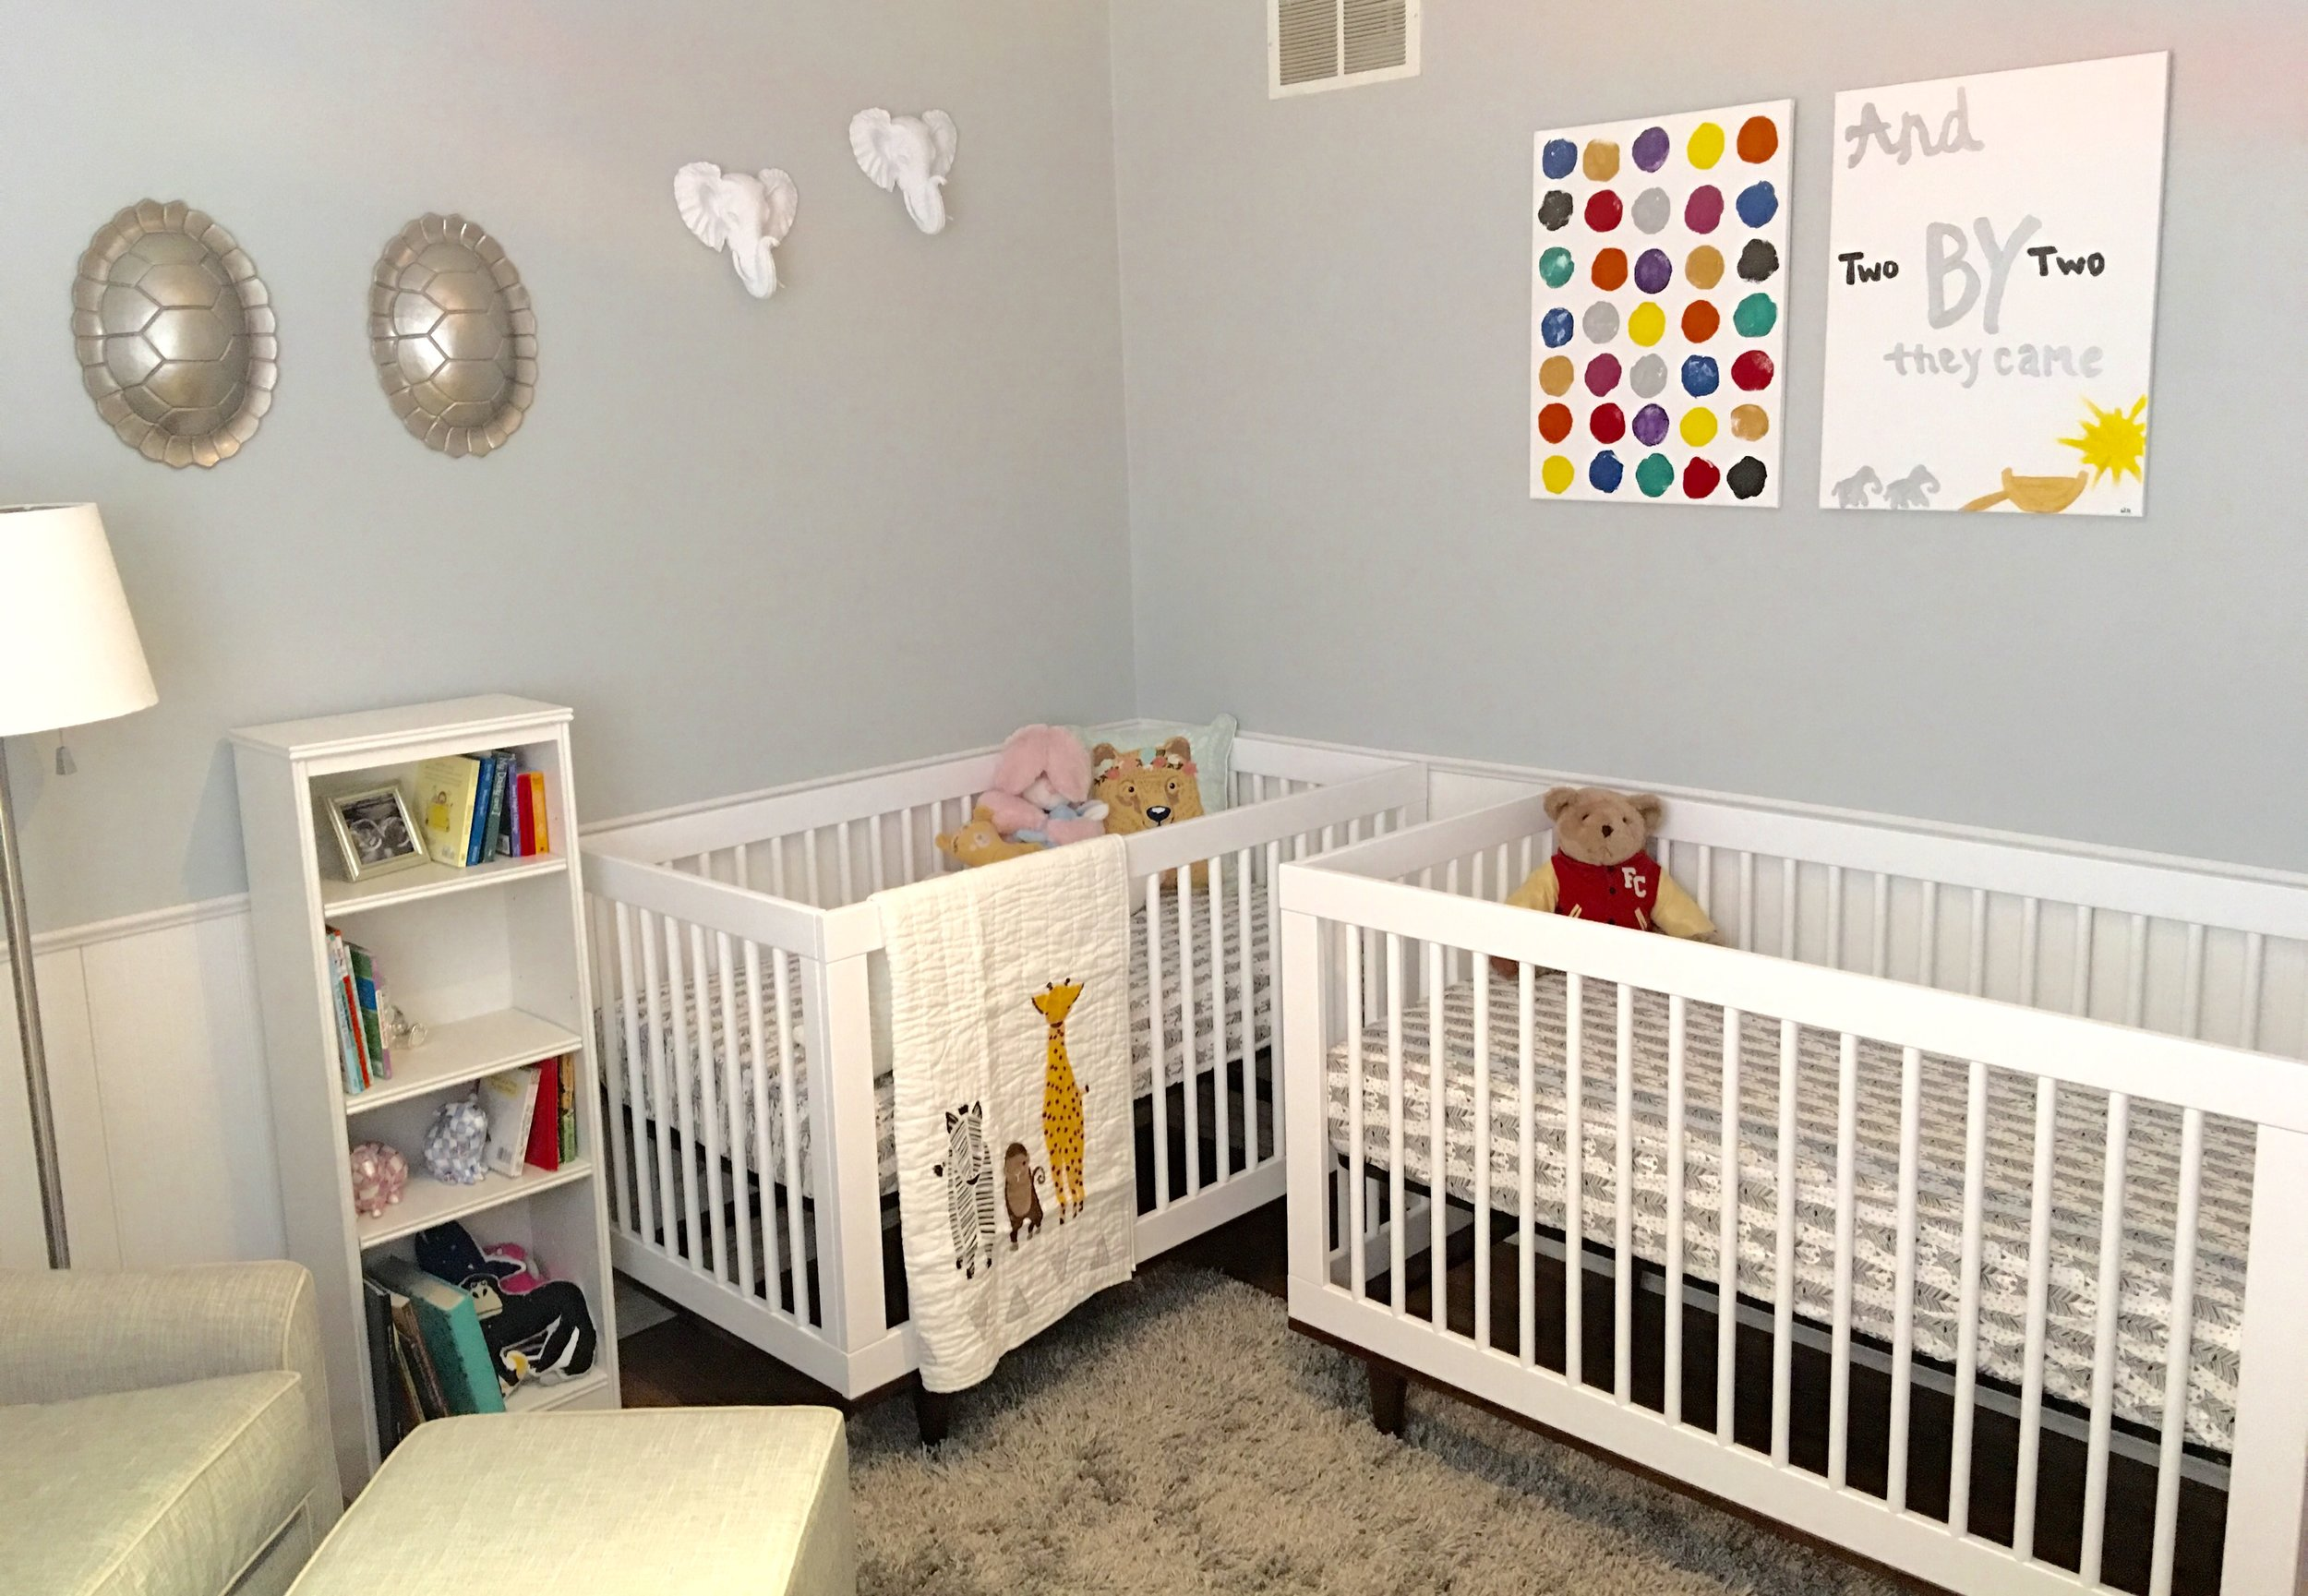 """The twins """"Noah's Ark"""" Nursery (And two by two they came). I hand painted the signs."""